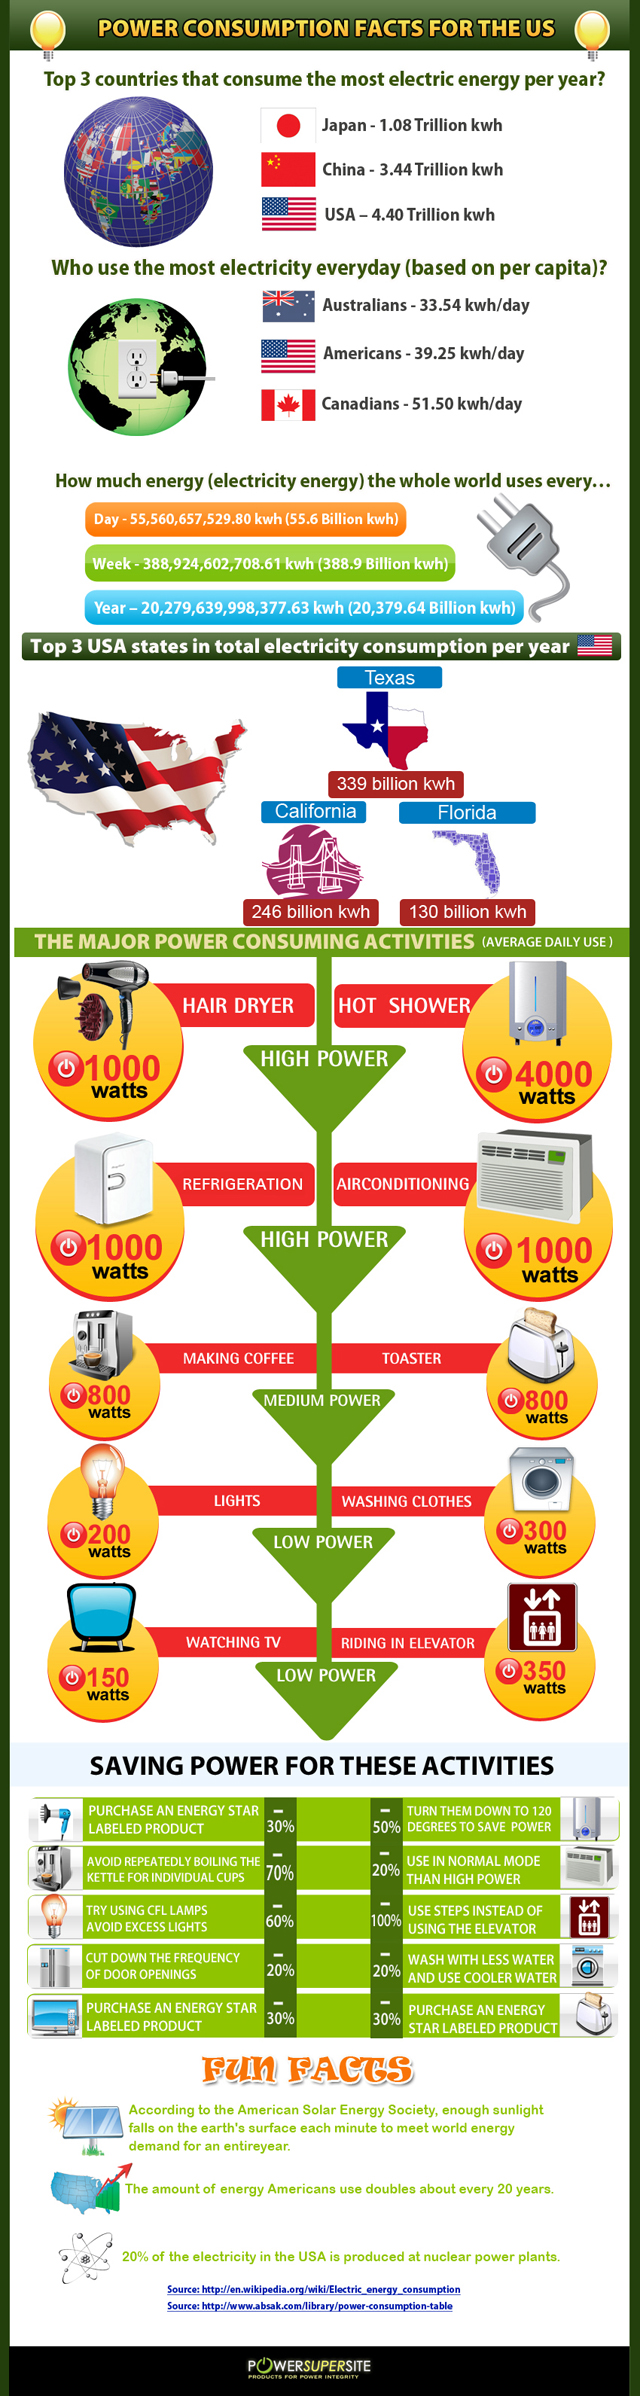 electricityinfographic2